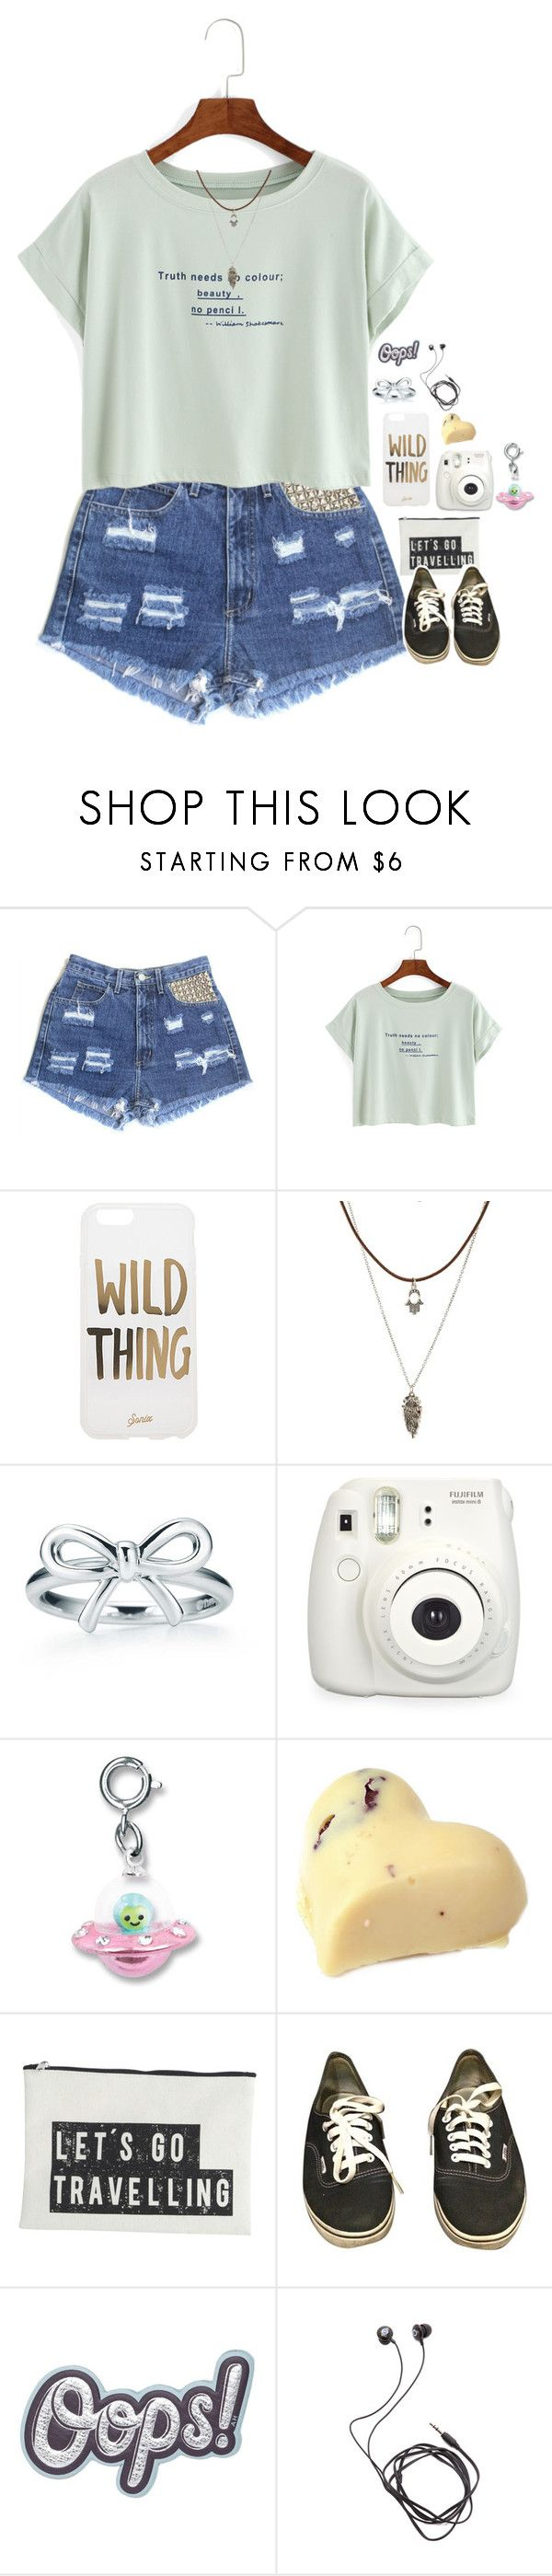 """""""❝I Was Never Imporant, Was I?❞"""" by astroed ❤ liked on Polyvore featuring GUESS, WithChic, Sonix, Charlotte Russe, Fuji, House Doctor, Vans, Anya Hindmarch and Diane Von Furstenberg"""